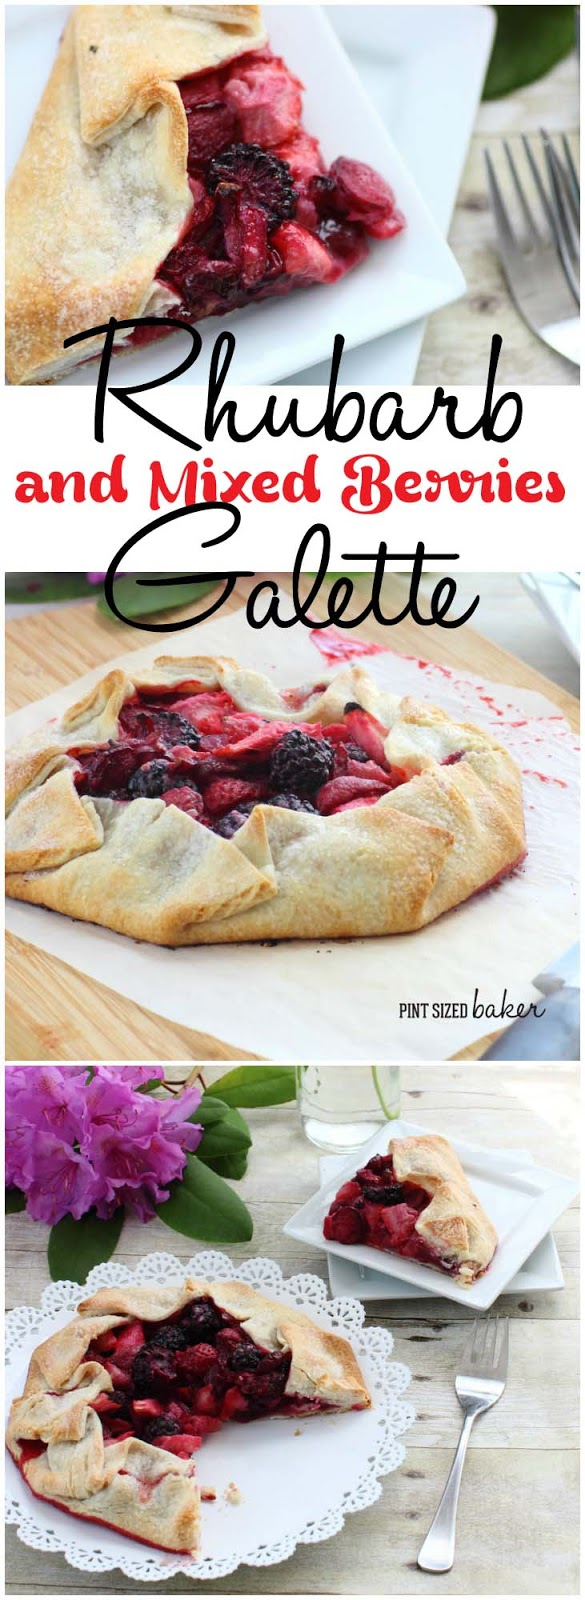 Quick, easy, and so good - this Rhubarb and Mixed Berry Galette is perfect for a weeknight dessert for your family.